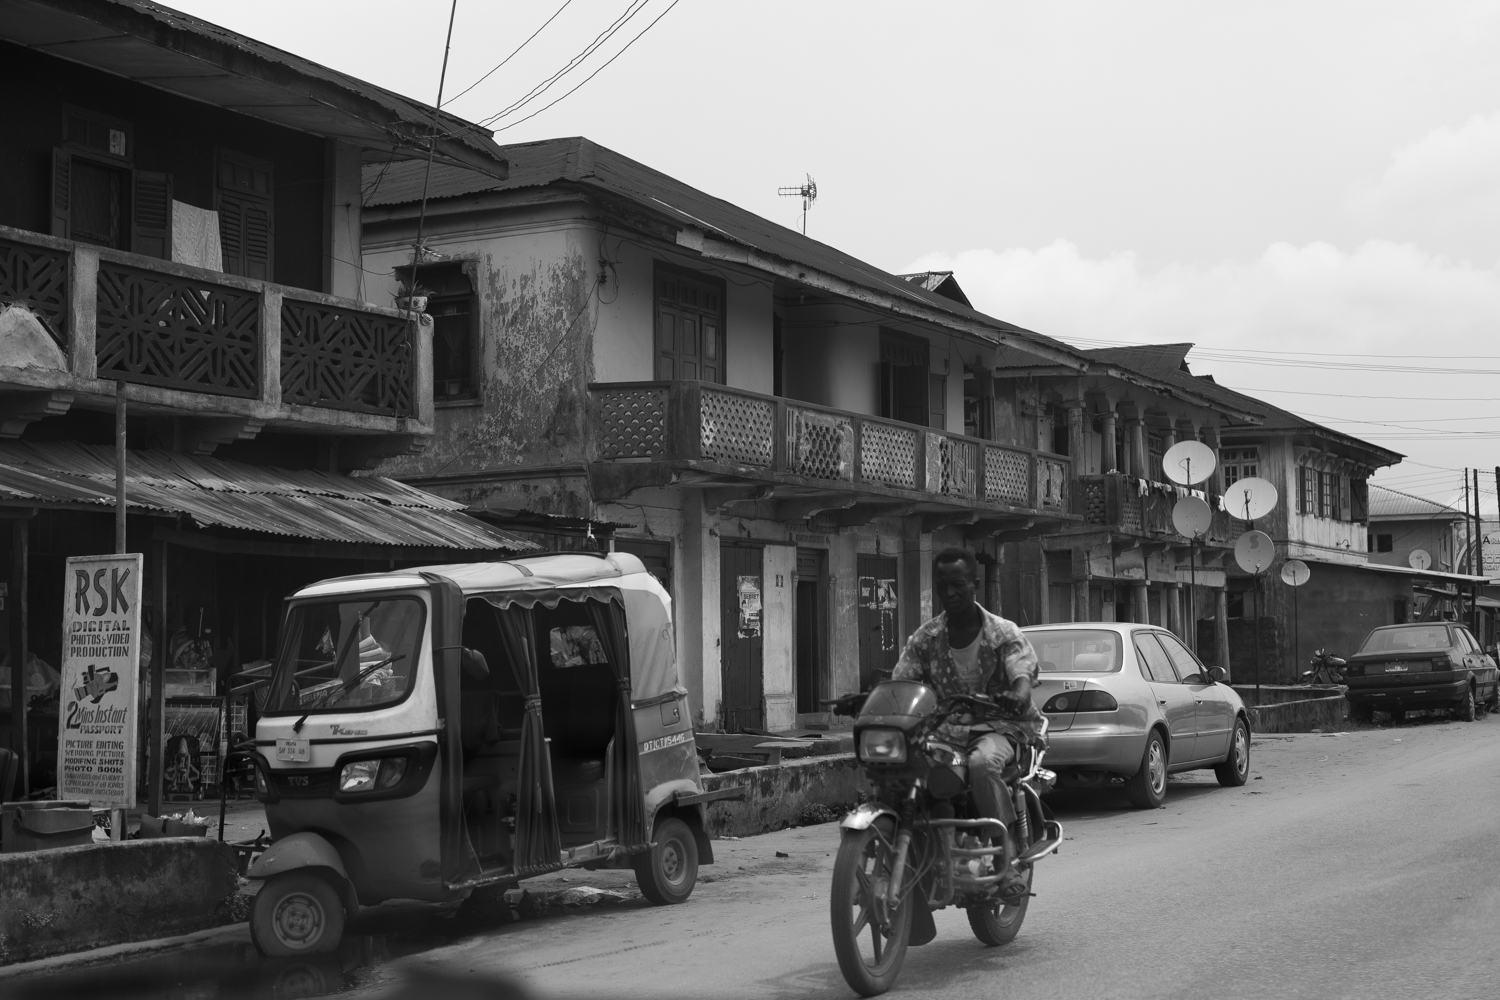 Motorcycle passing by colonial buildings in Sapele